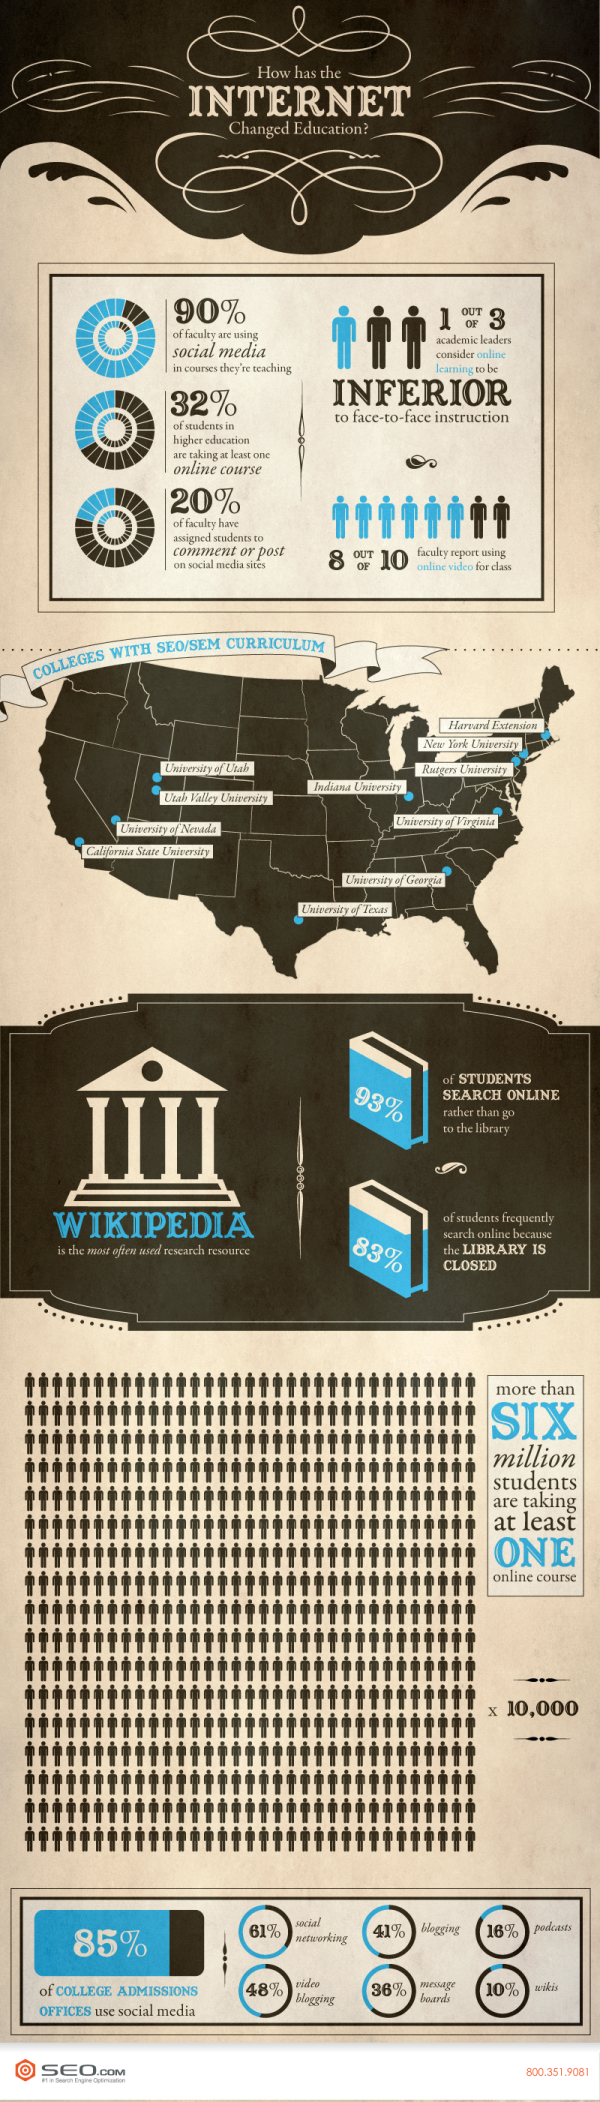 How Has Internet Changed Education? infographic